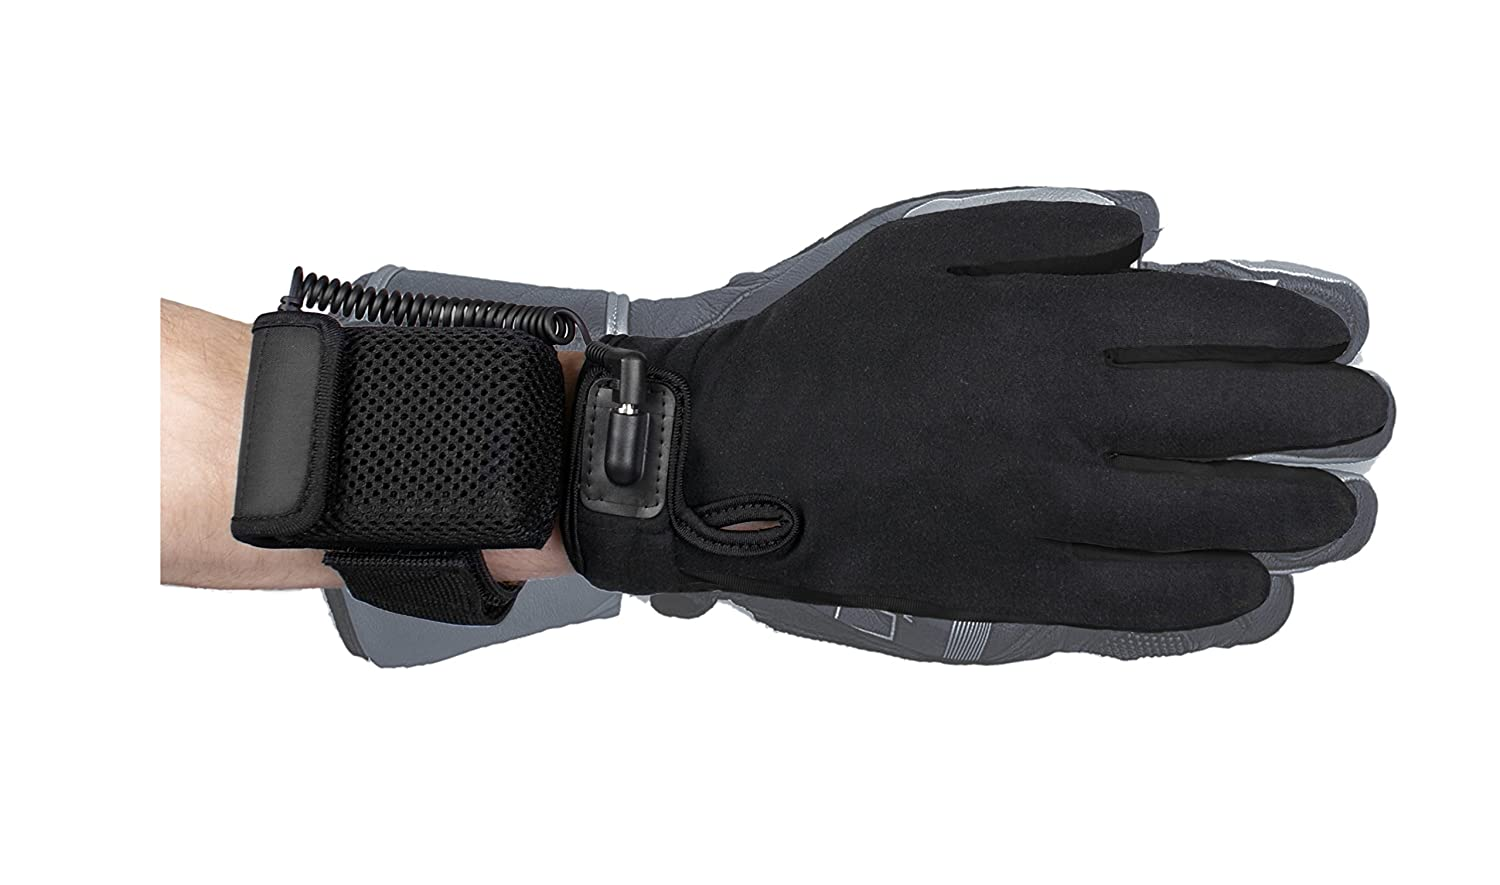 Warmawear Deluxe Battery Heated Motorcycle Glove Liners Small